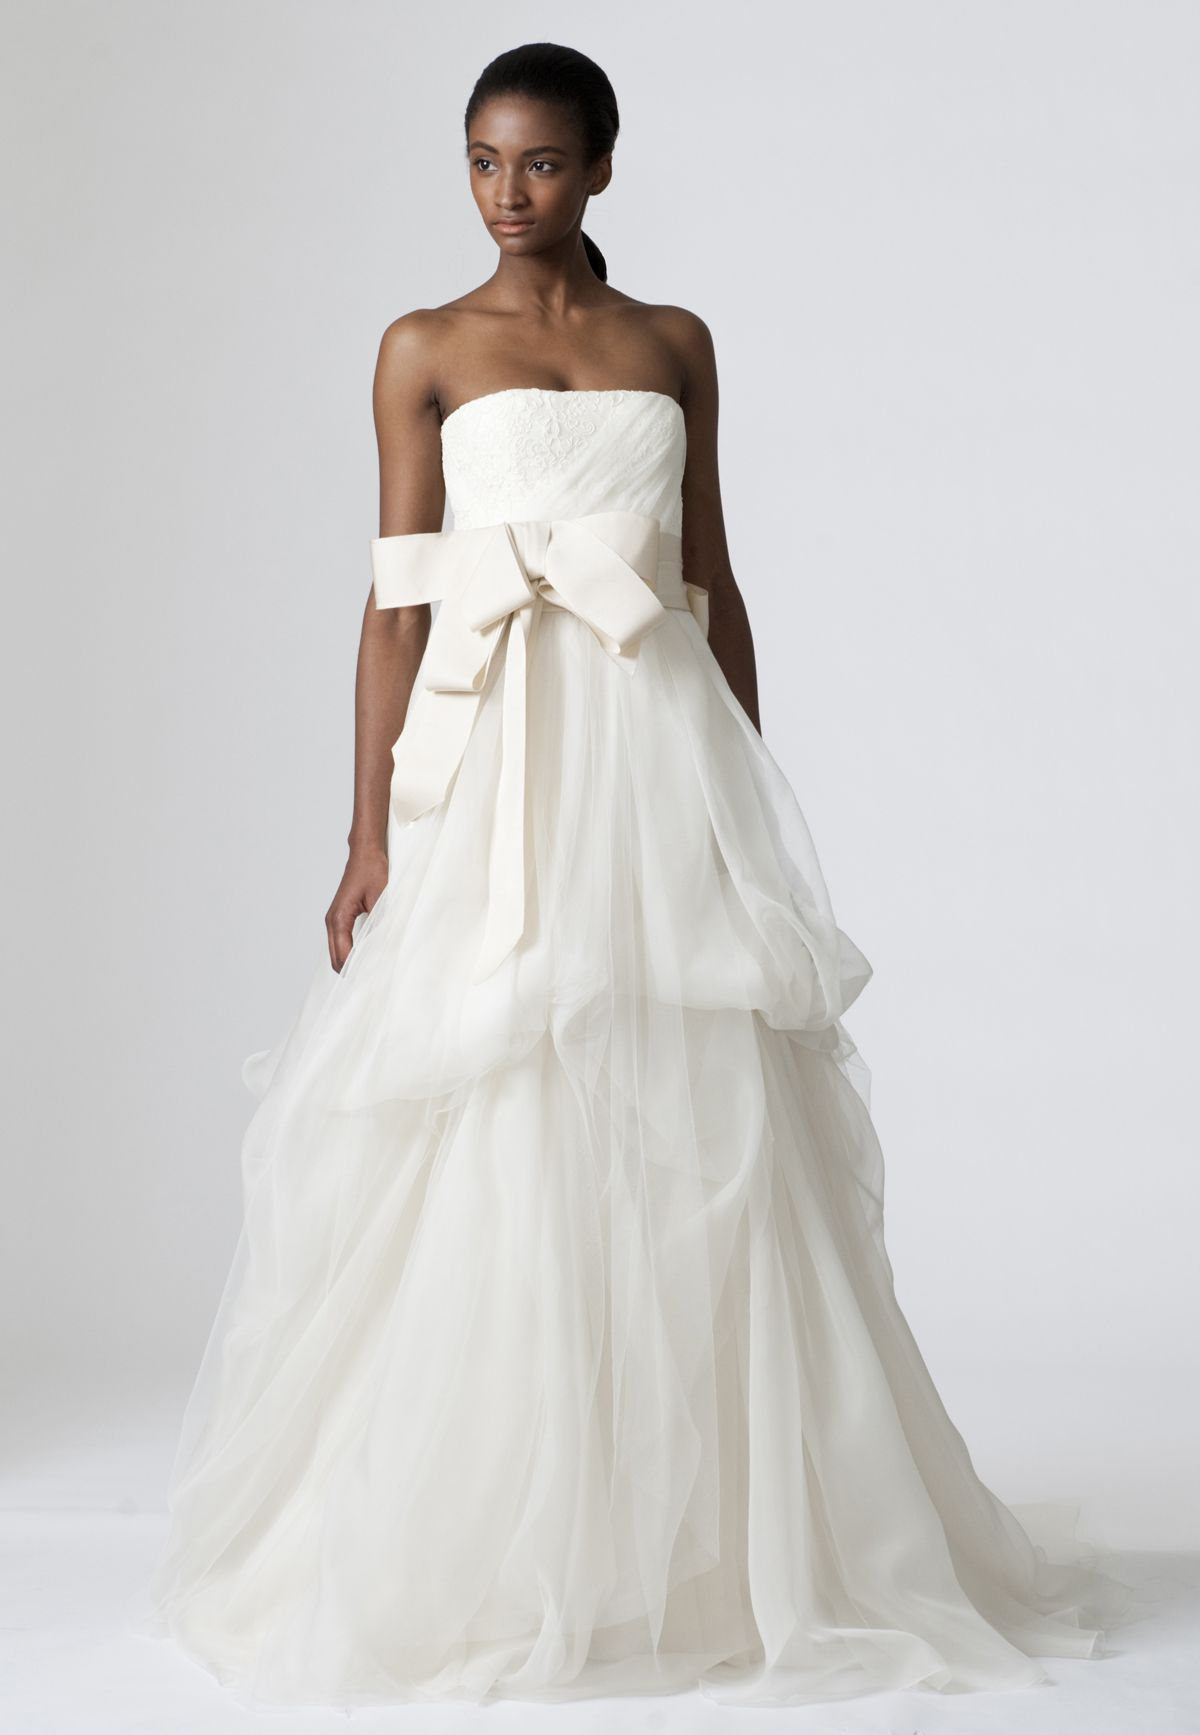 Vera Wang Classics Bridal Collection | Wedding dress, Bridal gowns ...